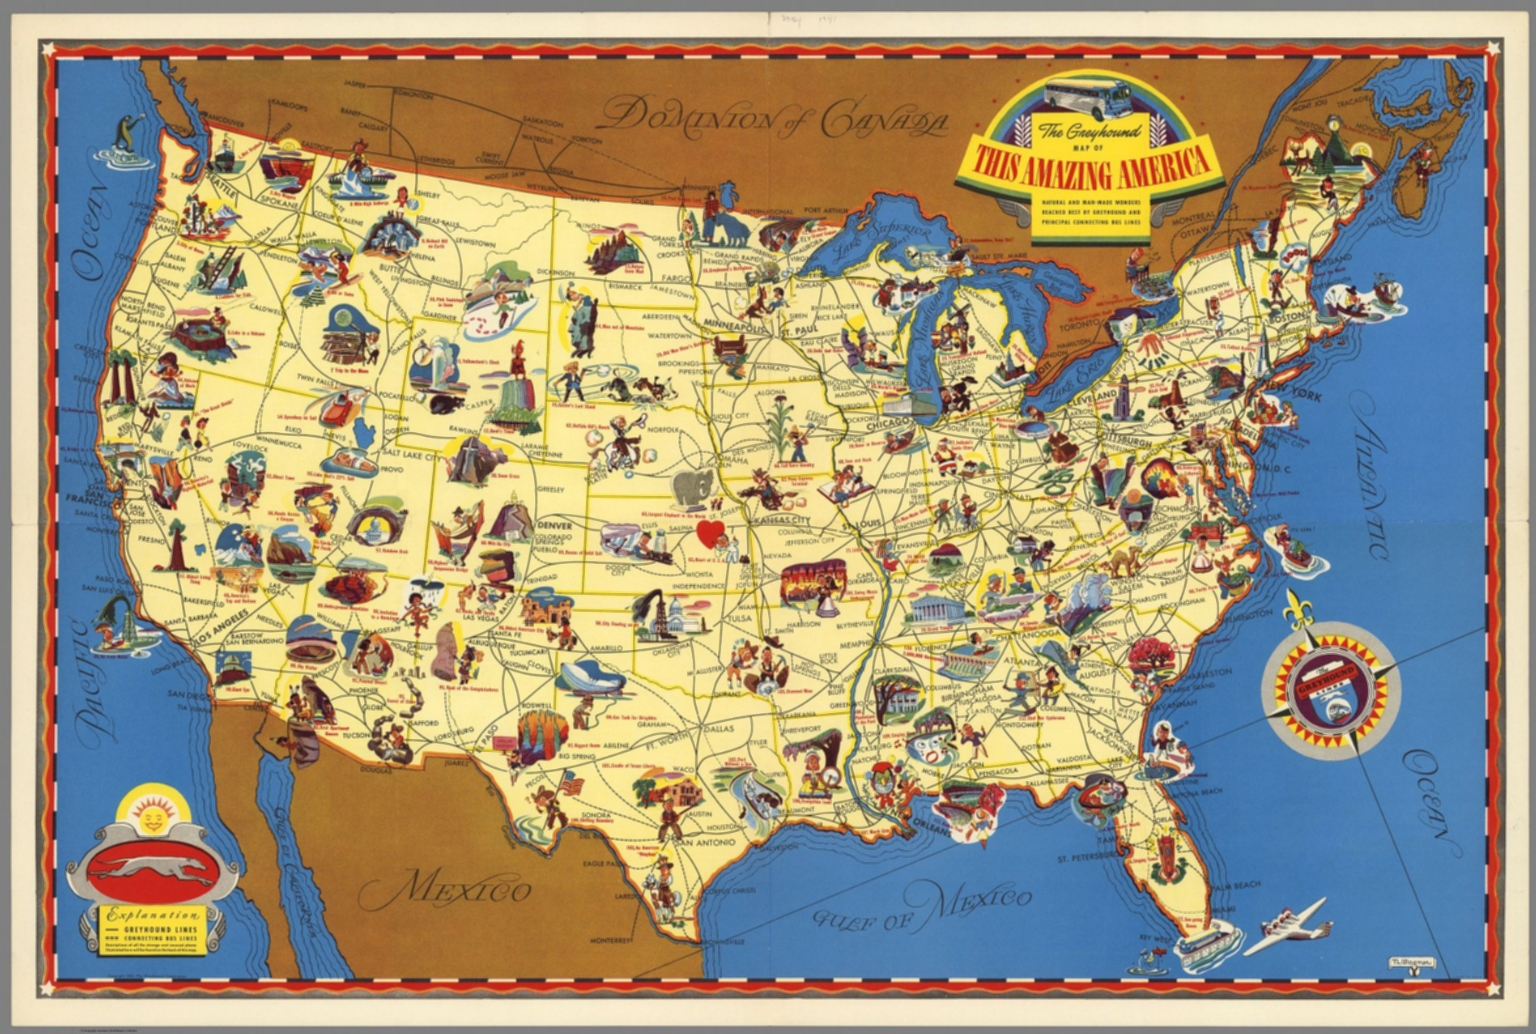 Greyhound Usa Map.Greyhound Bus Lines Map Of This Amazing America Natural And Man